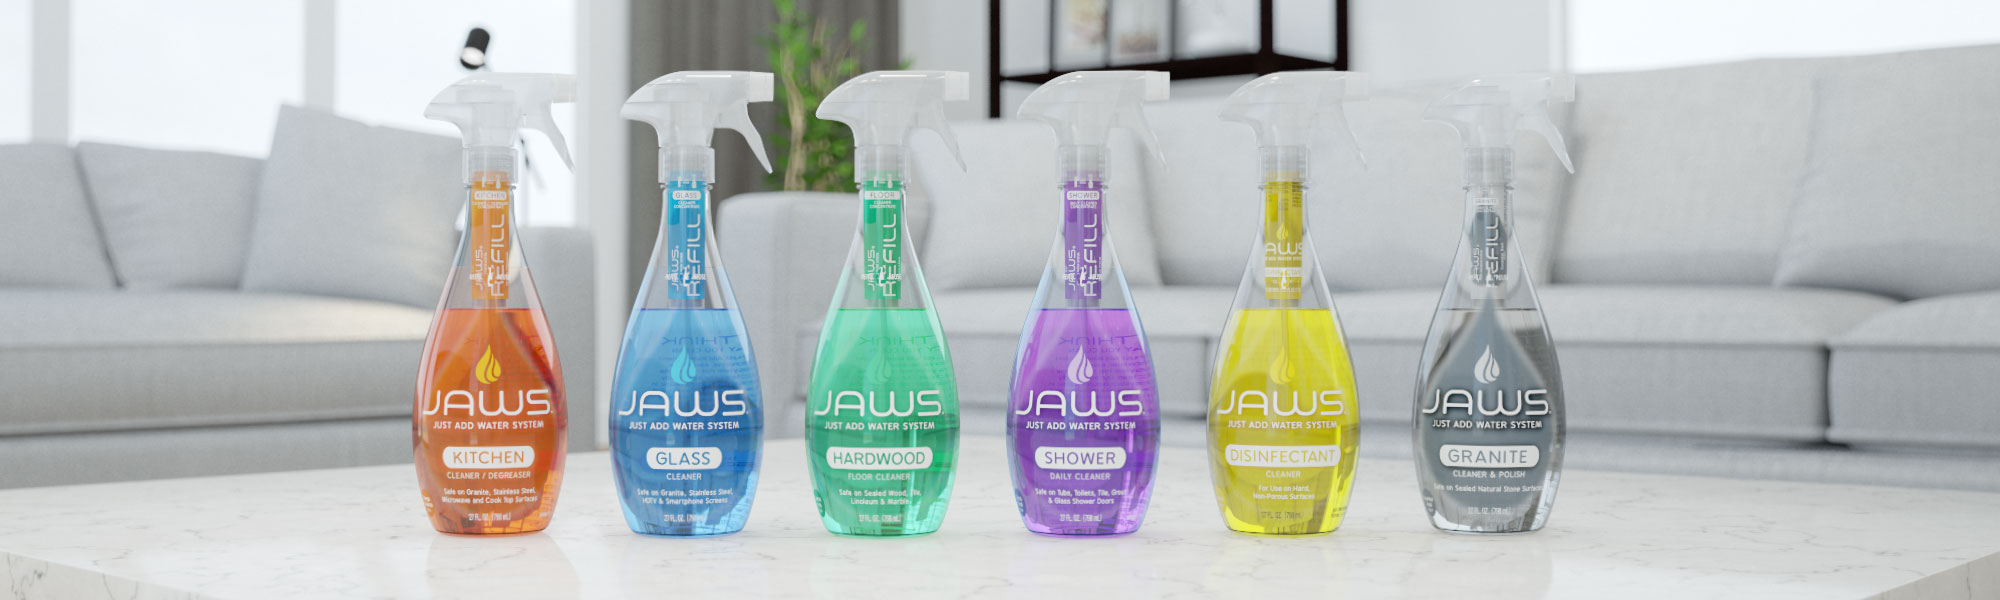 JAWS Refillable Cleaning Products | Eco Friendly and Non ...